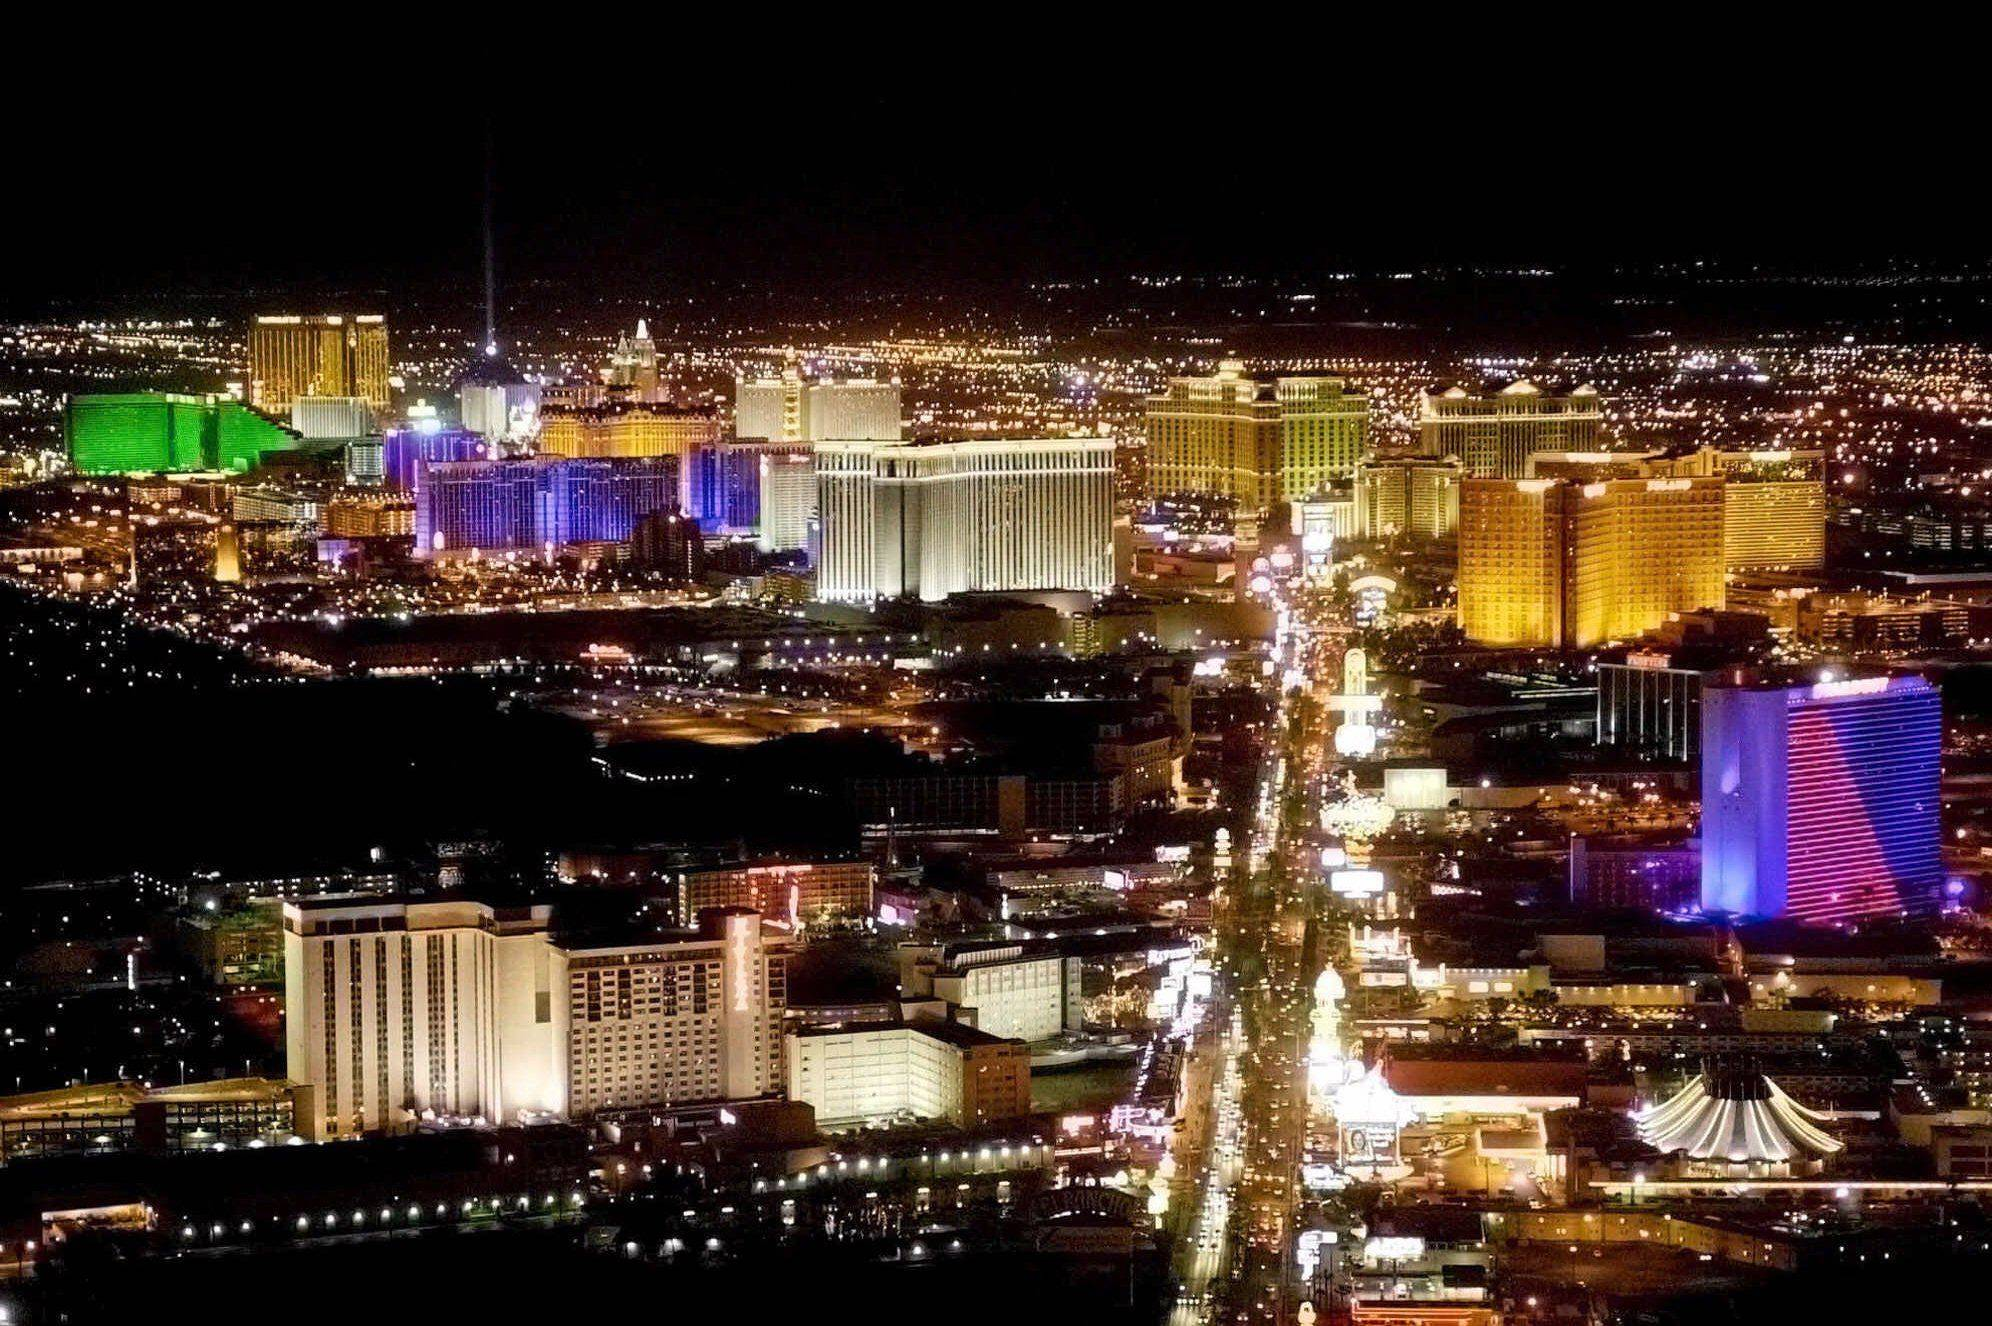 The Las Vegas Strip lights up the night with its casinos and resorts.